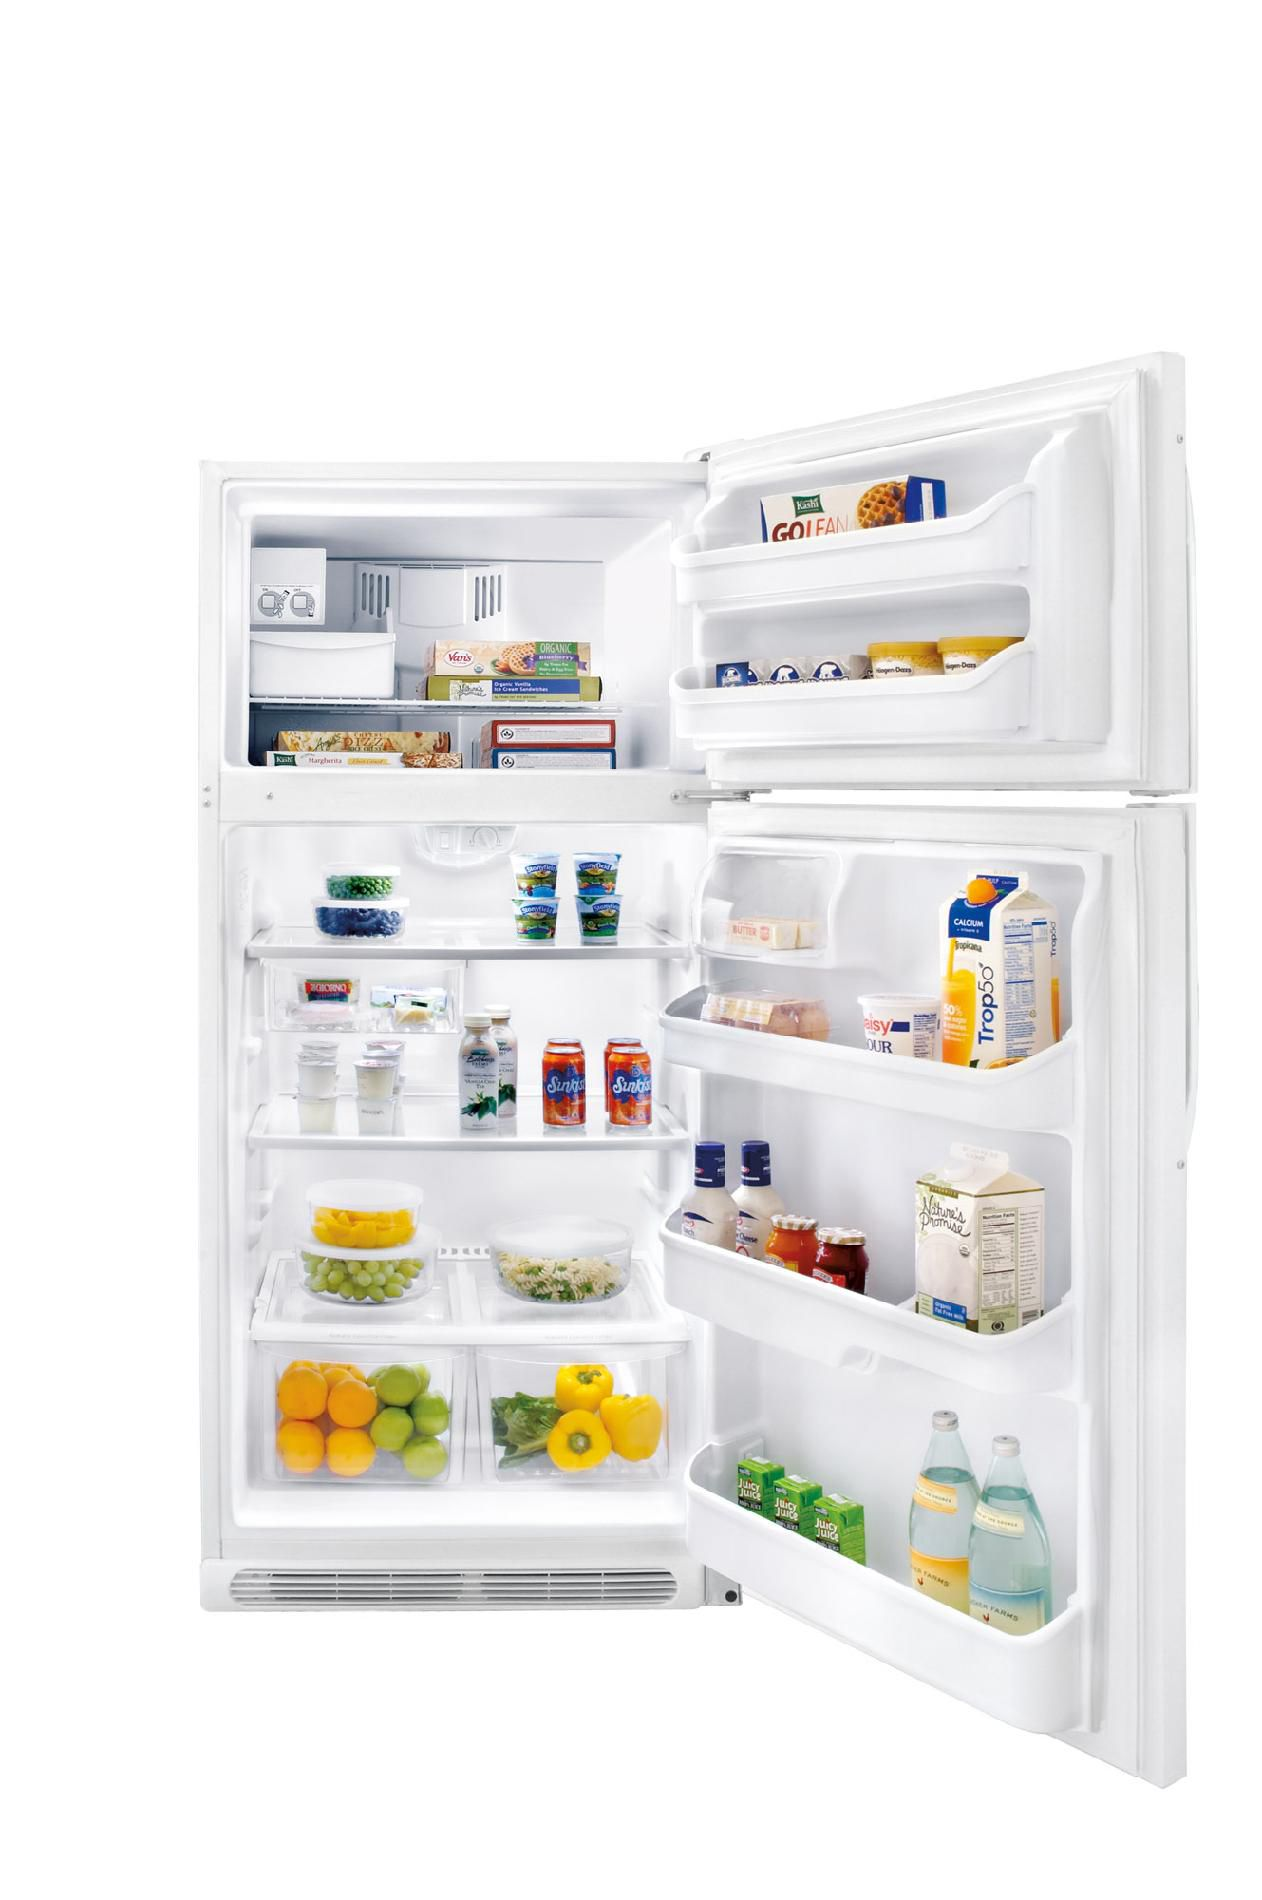 Kenmore 18.2 cu. ft. Top-Freezer Refrigerator - White